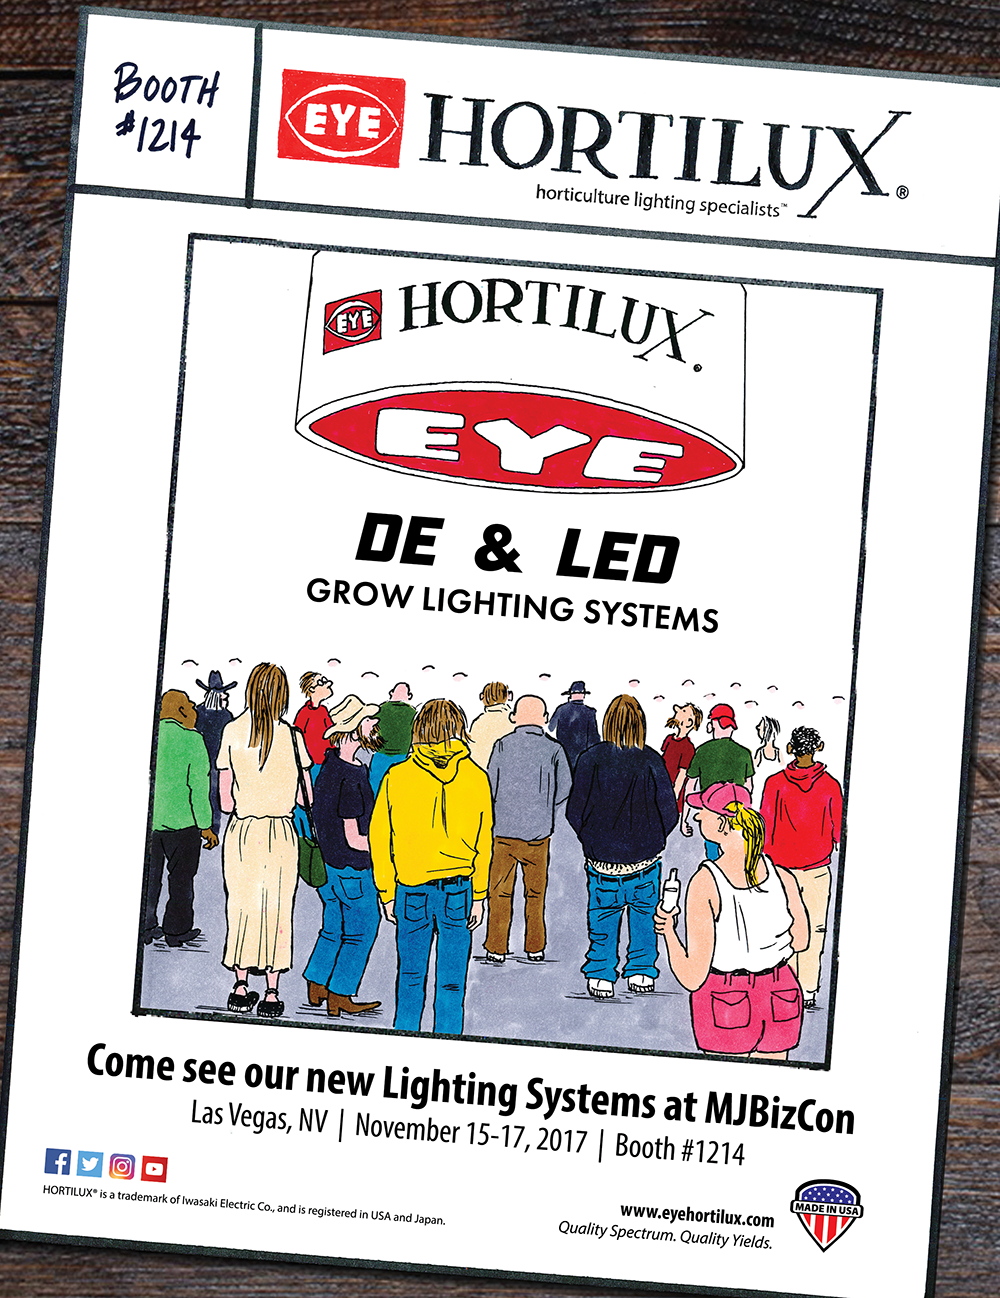 Stop by to see EYE Hortilux at the Marijuana Business Conference and Expo in Las Vegas to see the new DE & LED Grow Light Systems.